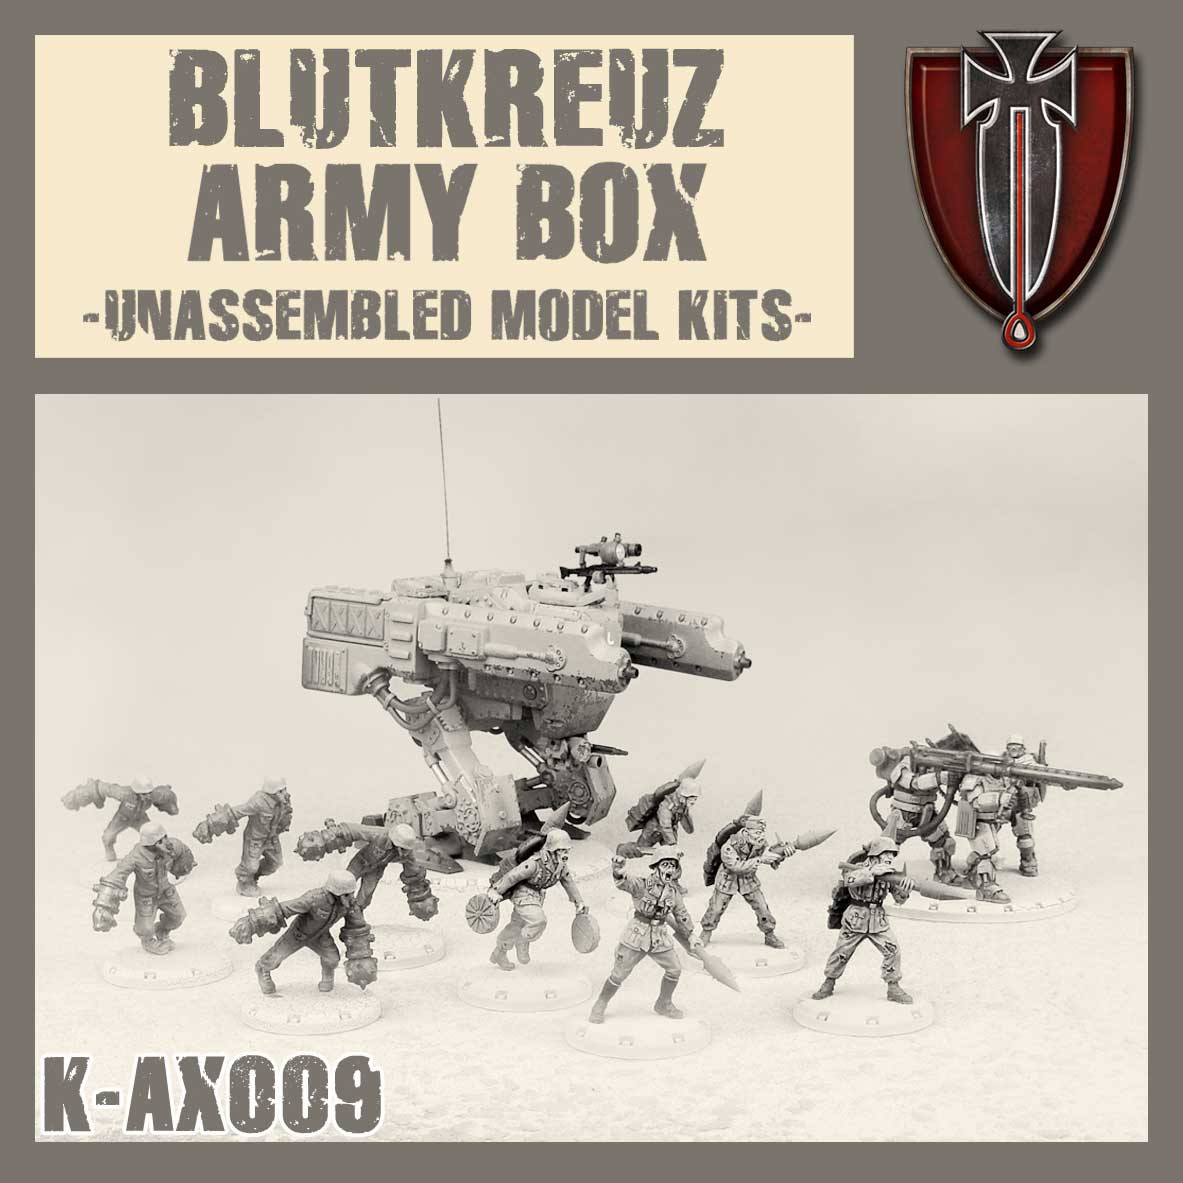 Blutkreuz Army Box Kit